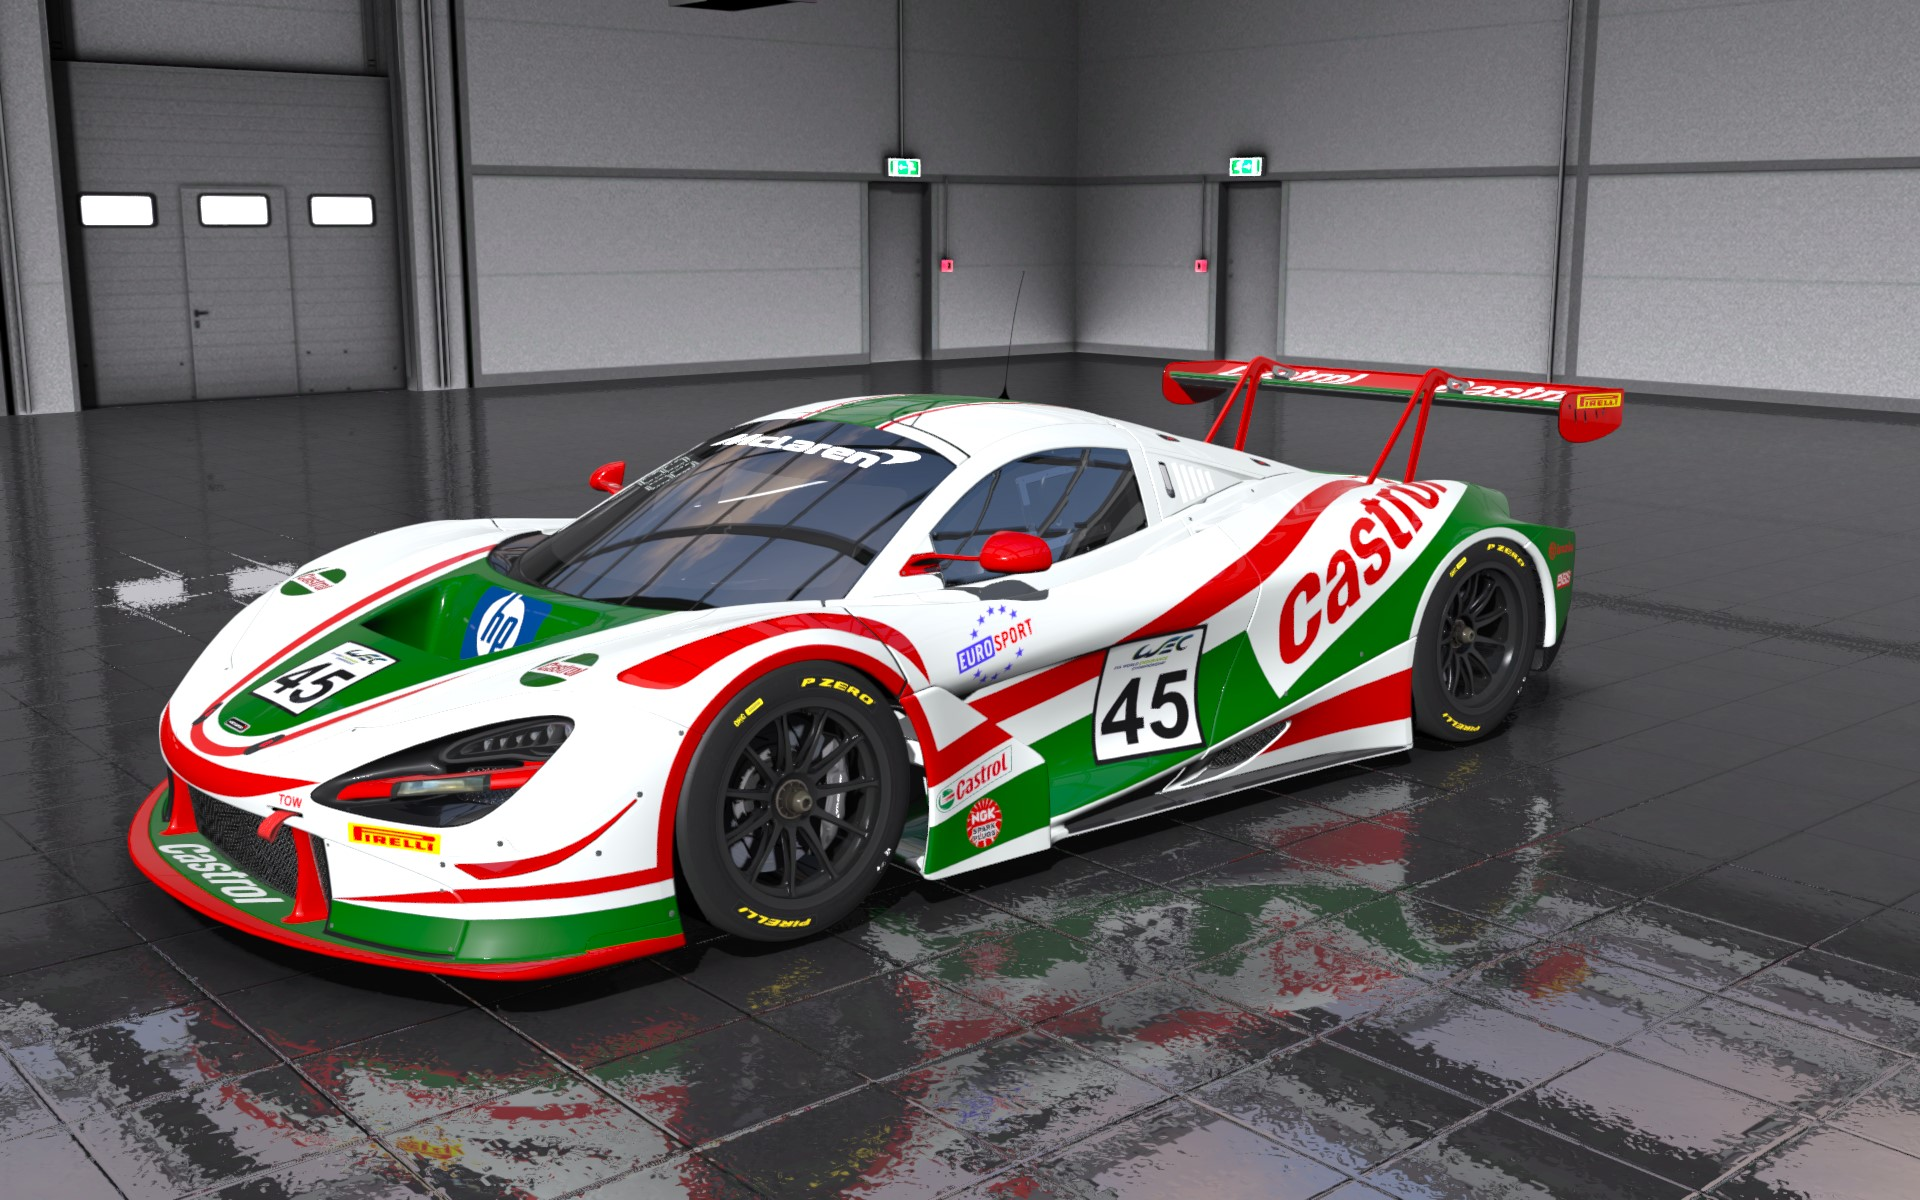 S397 Gt3 Mclaren 720s Castrol 45 Racedepartment Latest